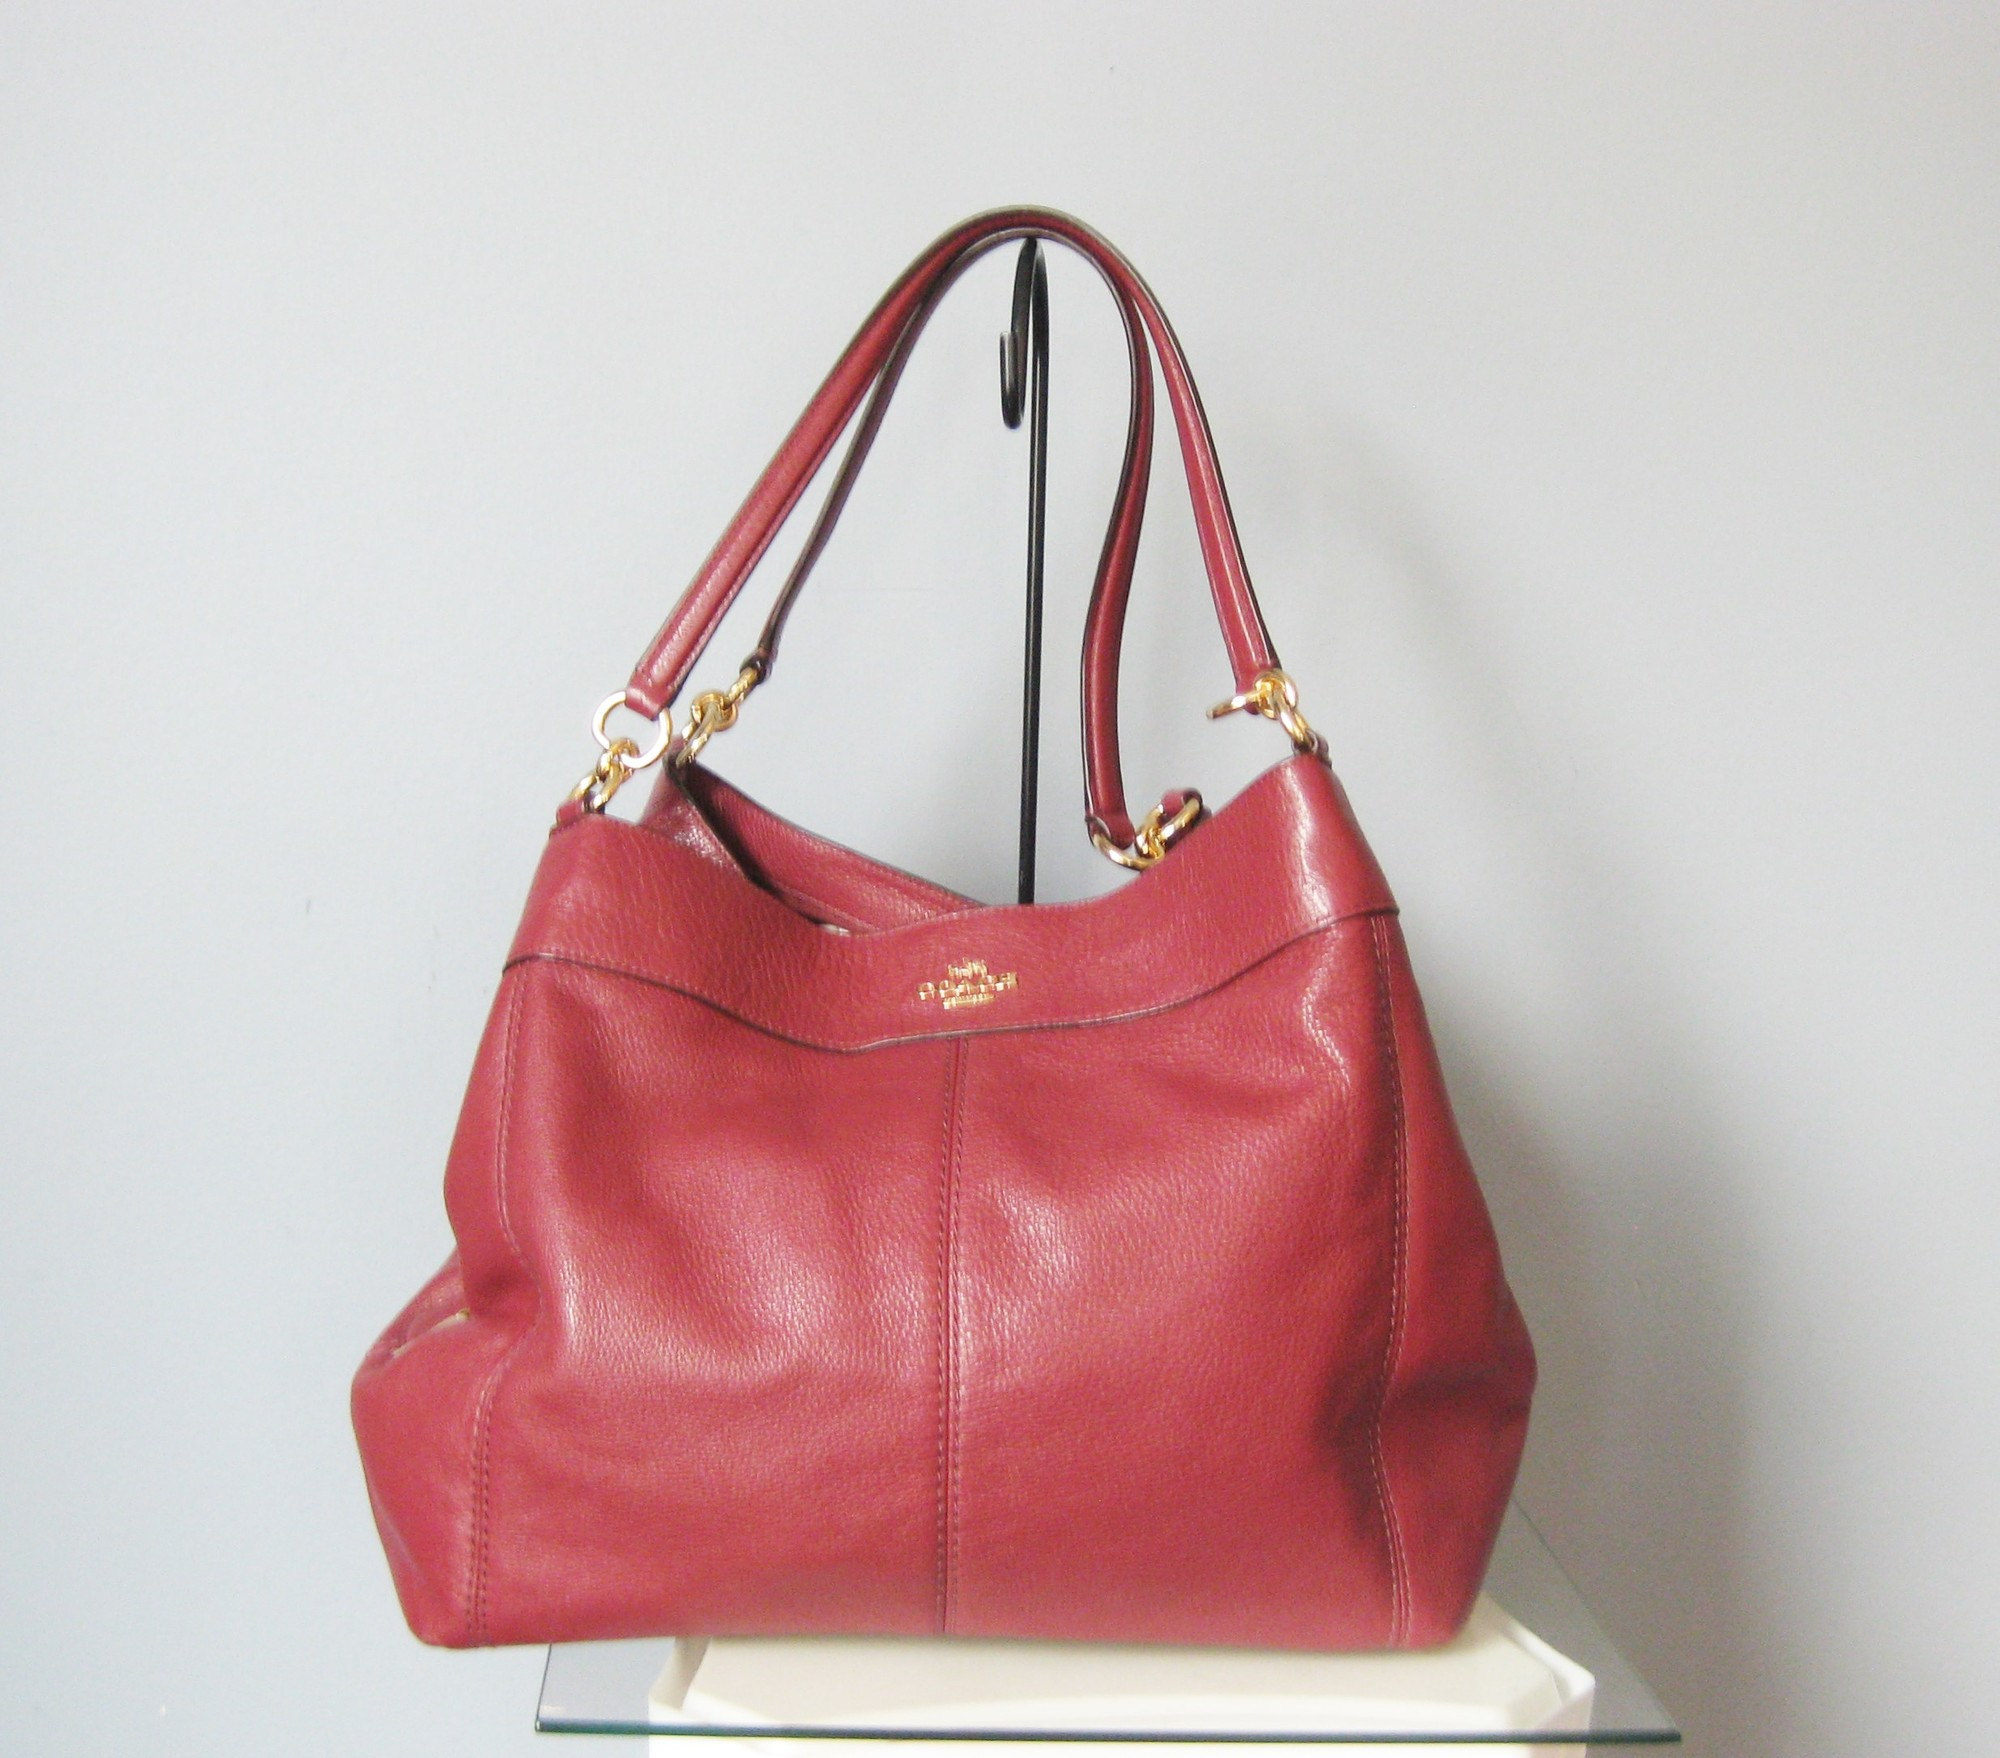 Coach Leather 23511, Burgundy, Size: None<br /> Gorgeous dark red leather Madison Phoebe bag from Coach.<br /> Three main compartments, the outside two snap together at the top and the middle one has a zipper.<br /> Nice and secure for travelingt<br /> also roomy!<br /> 16in x 12in x 6in<br /> handle drop : 9in<br /> Two slip pockets and one zippered pocket inside<br /> <br /> immacualte inside and out.<br /> <br /> Thanks for looking!<br /> #41444